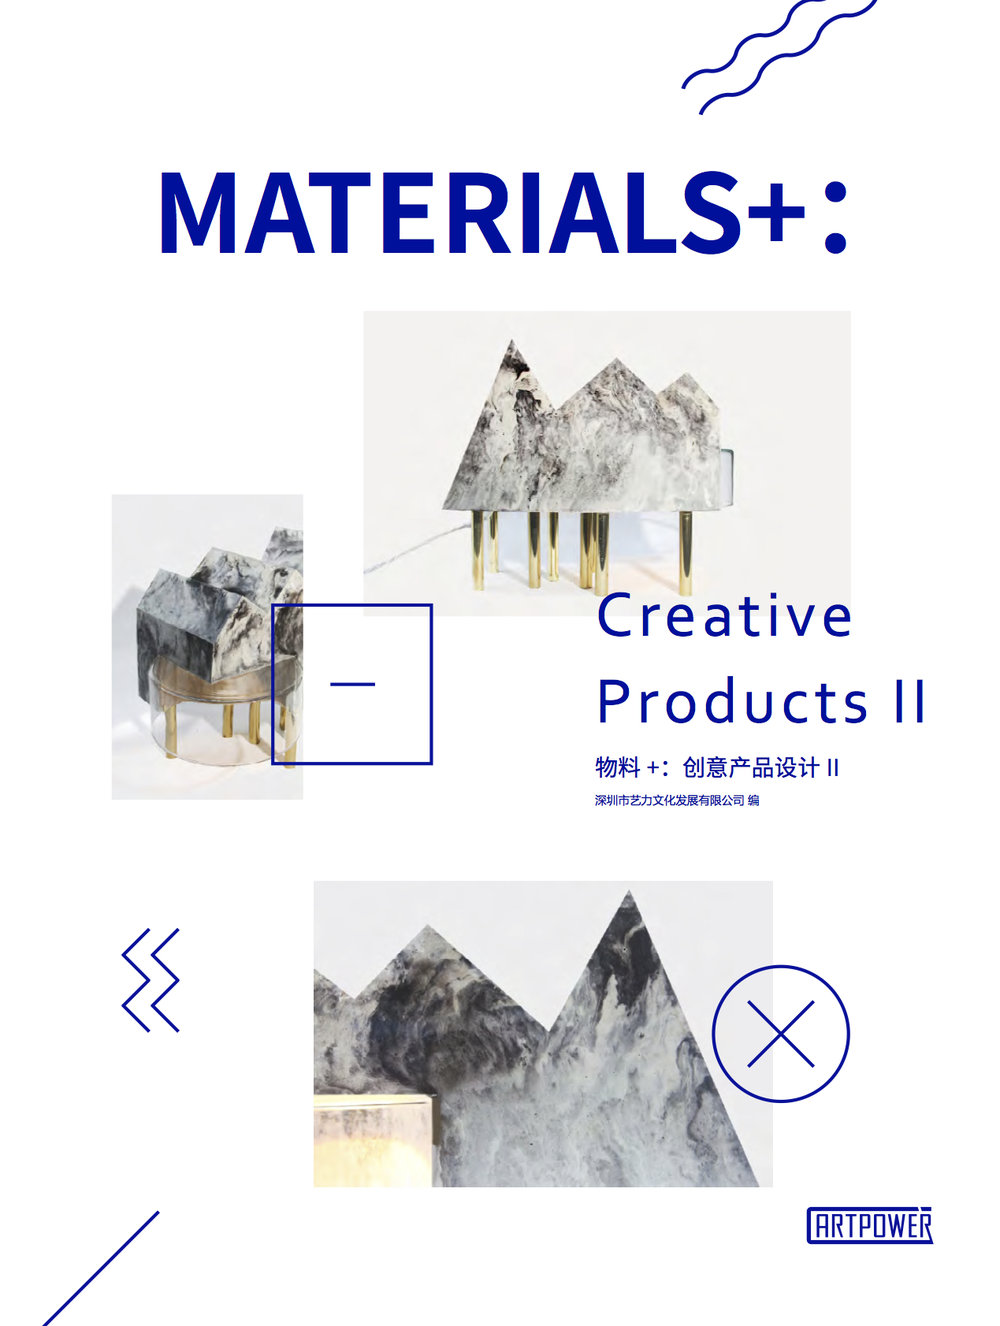 【0330】Materials+ Creative Products II.jpg